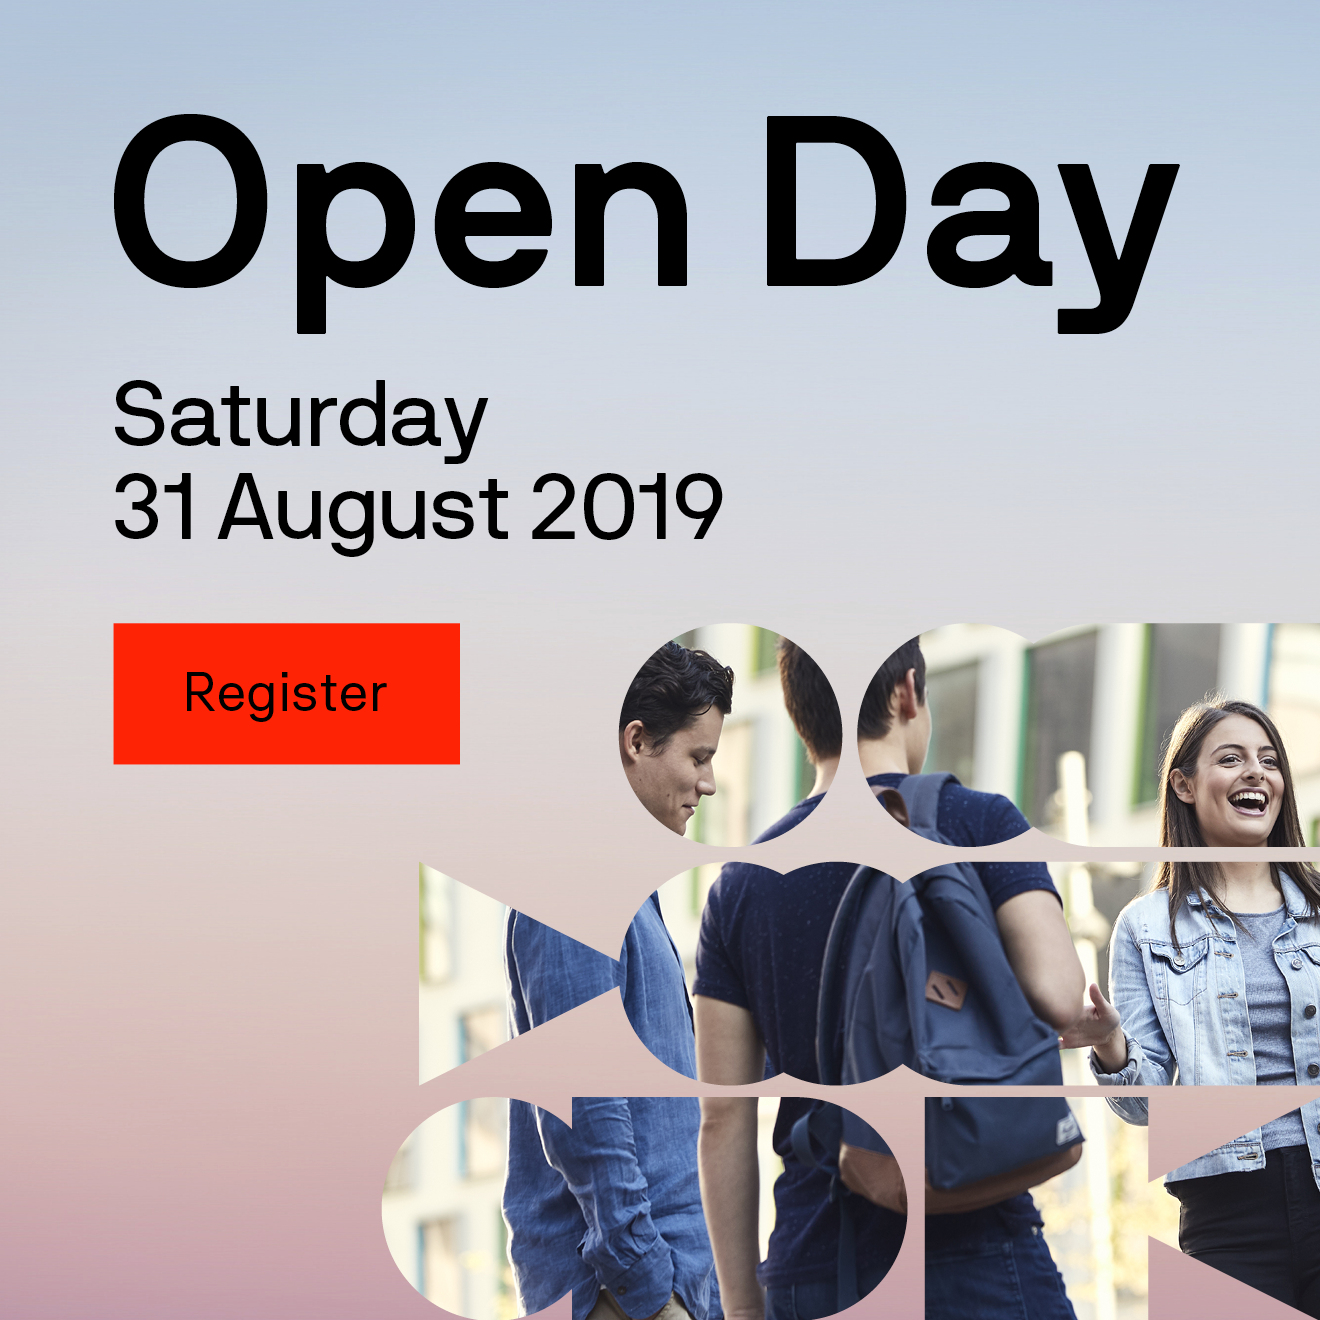 Open Day Saturday 31 August 2019 Register